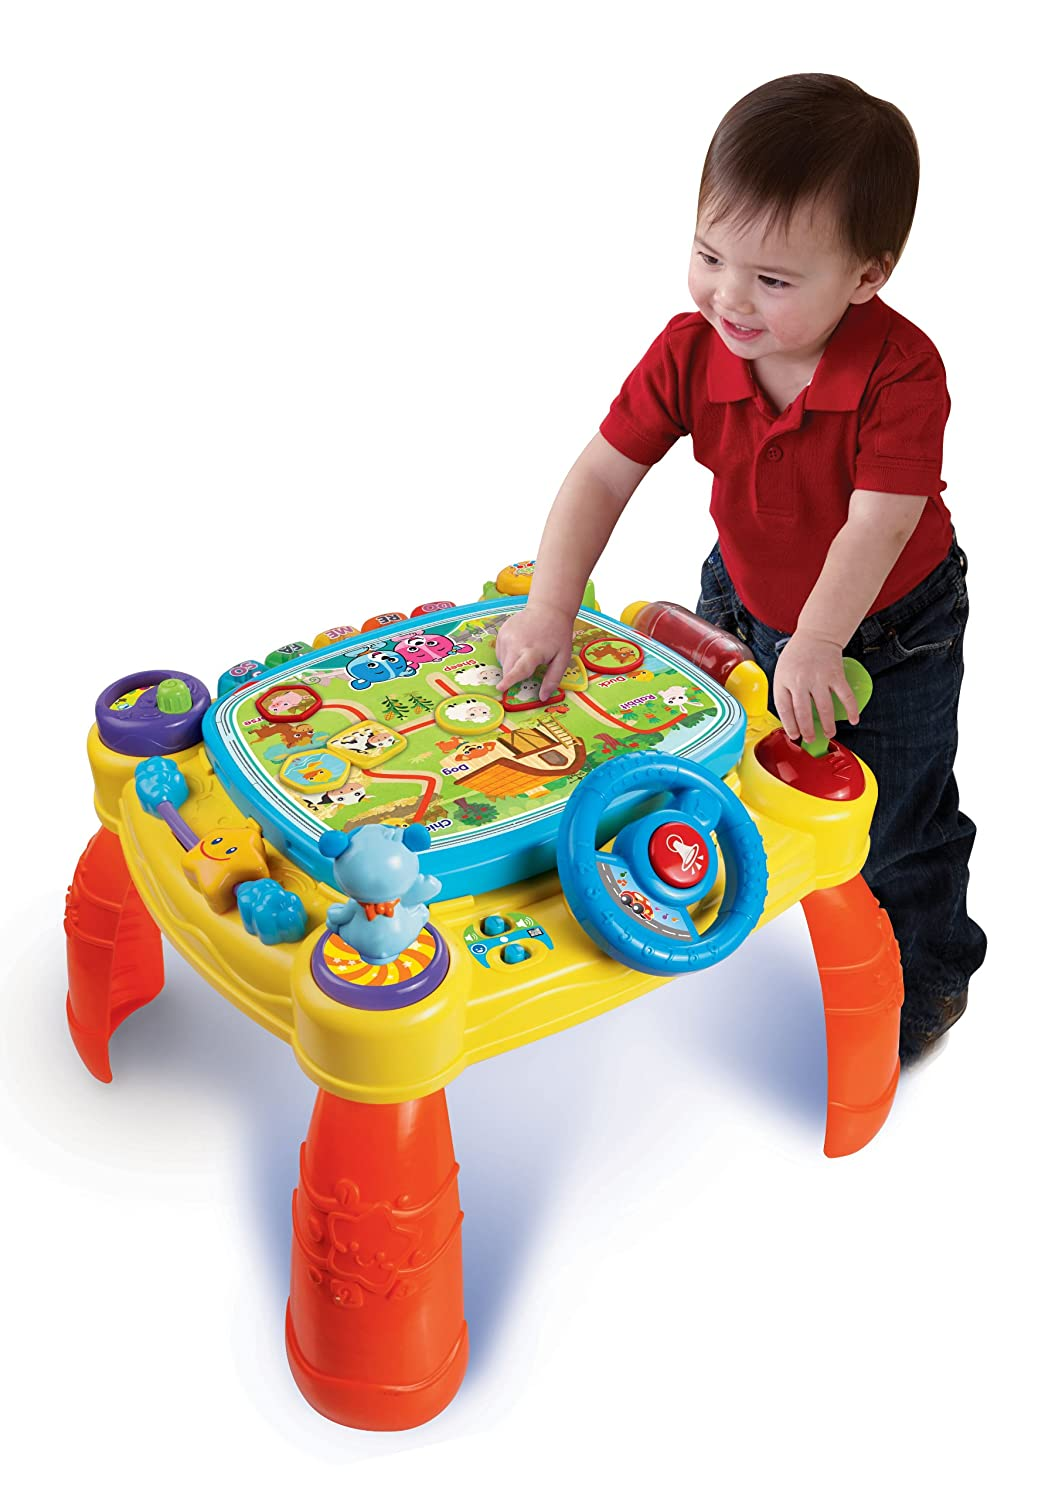 VTech iDiscover App Activity Table Toy Review